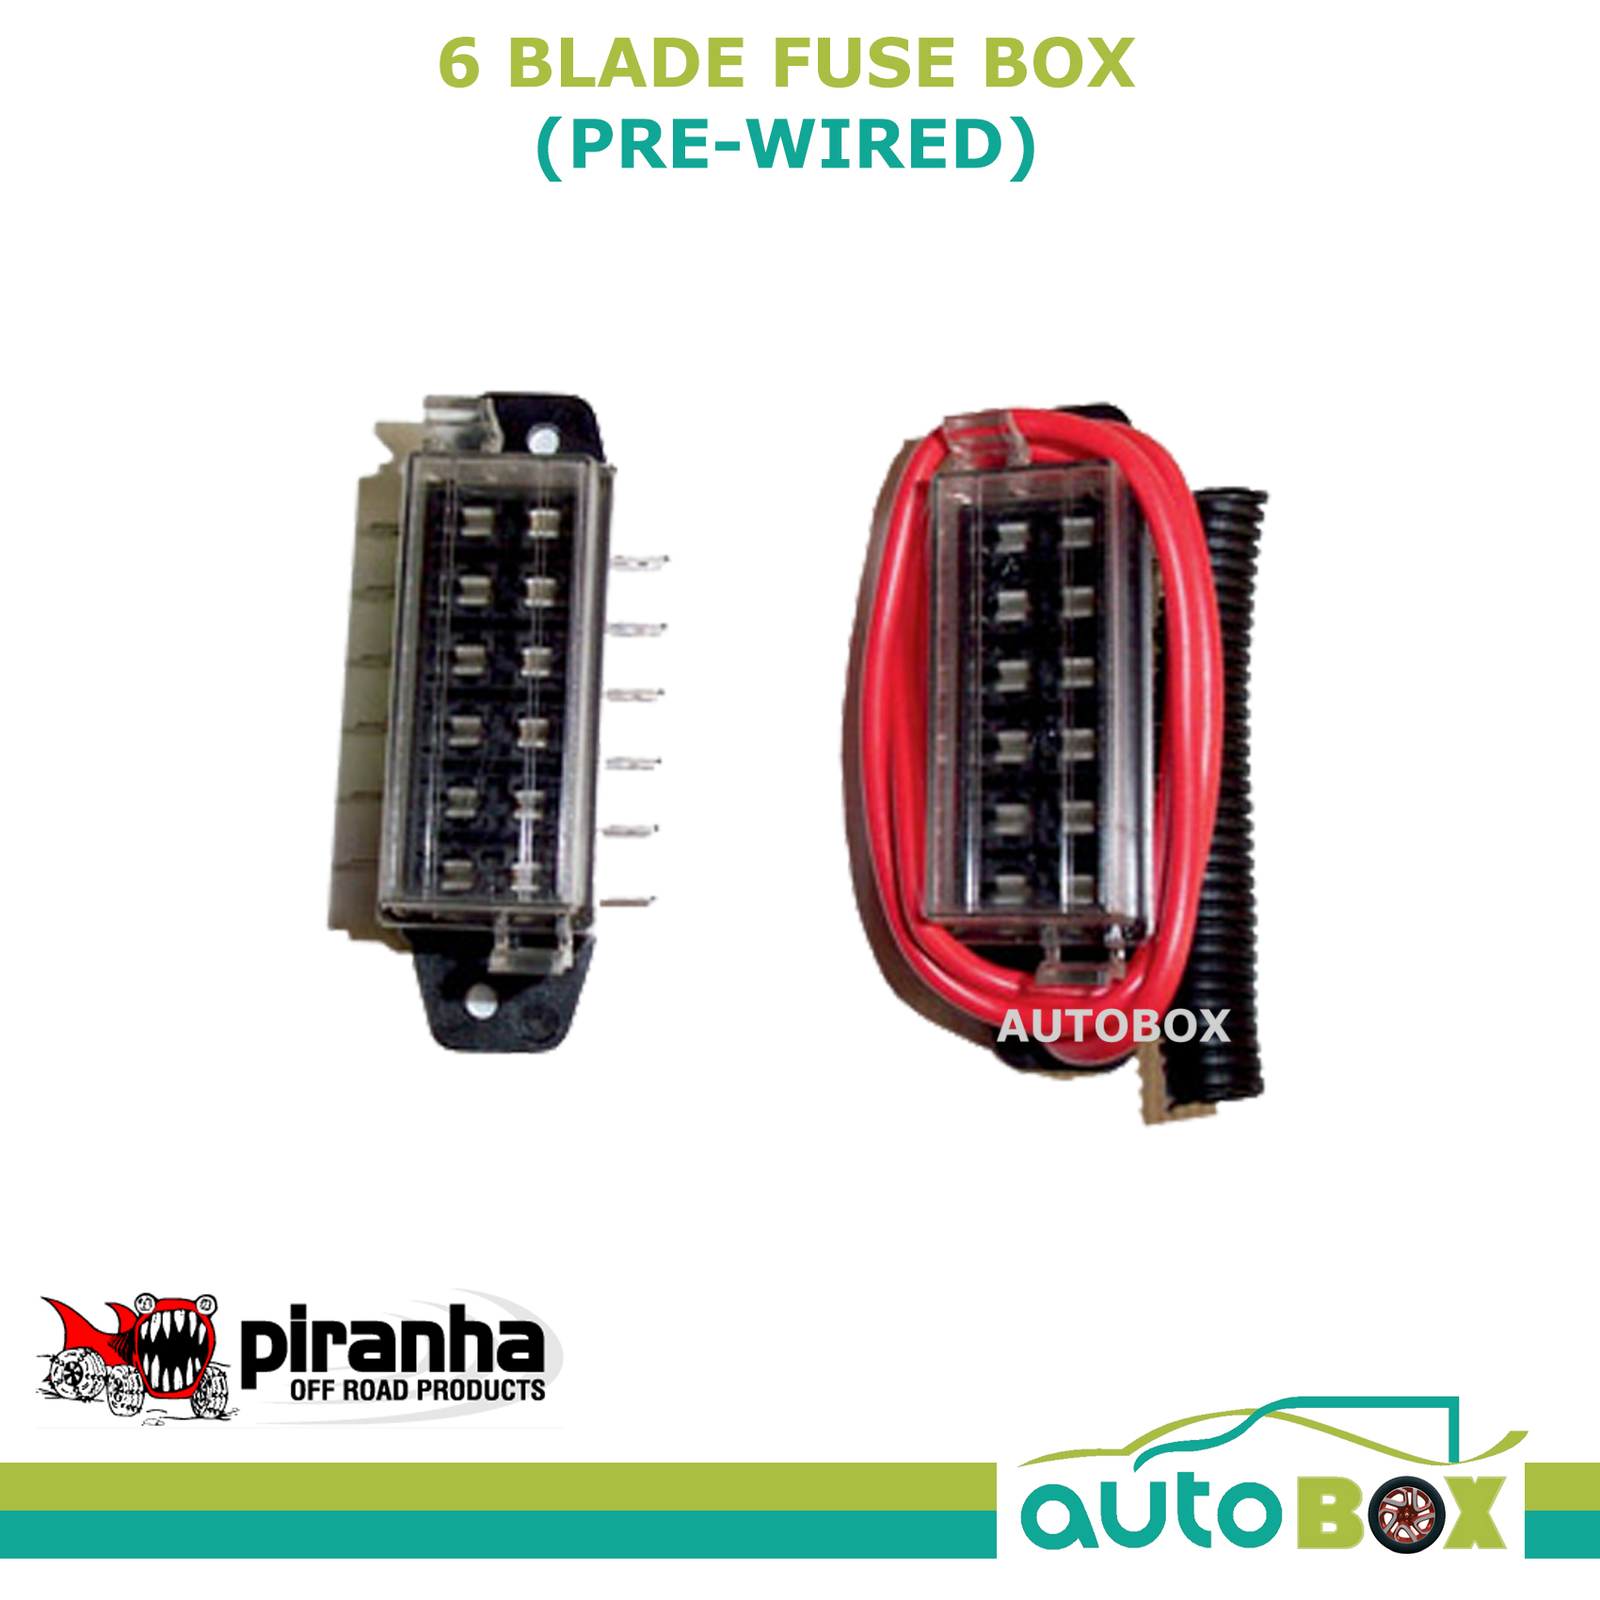 narva dual battery switch wiring diagram cat5 cable electrical fuse box albania distribution